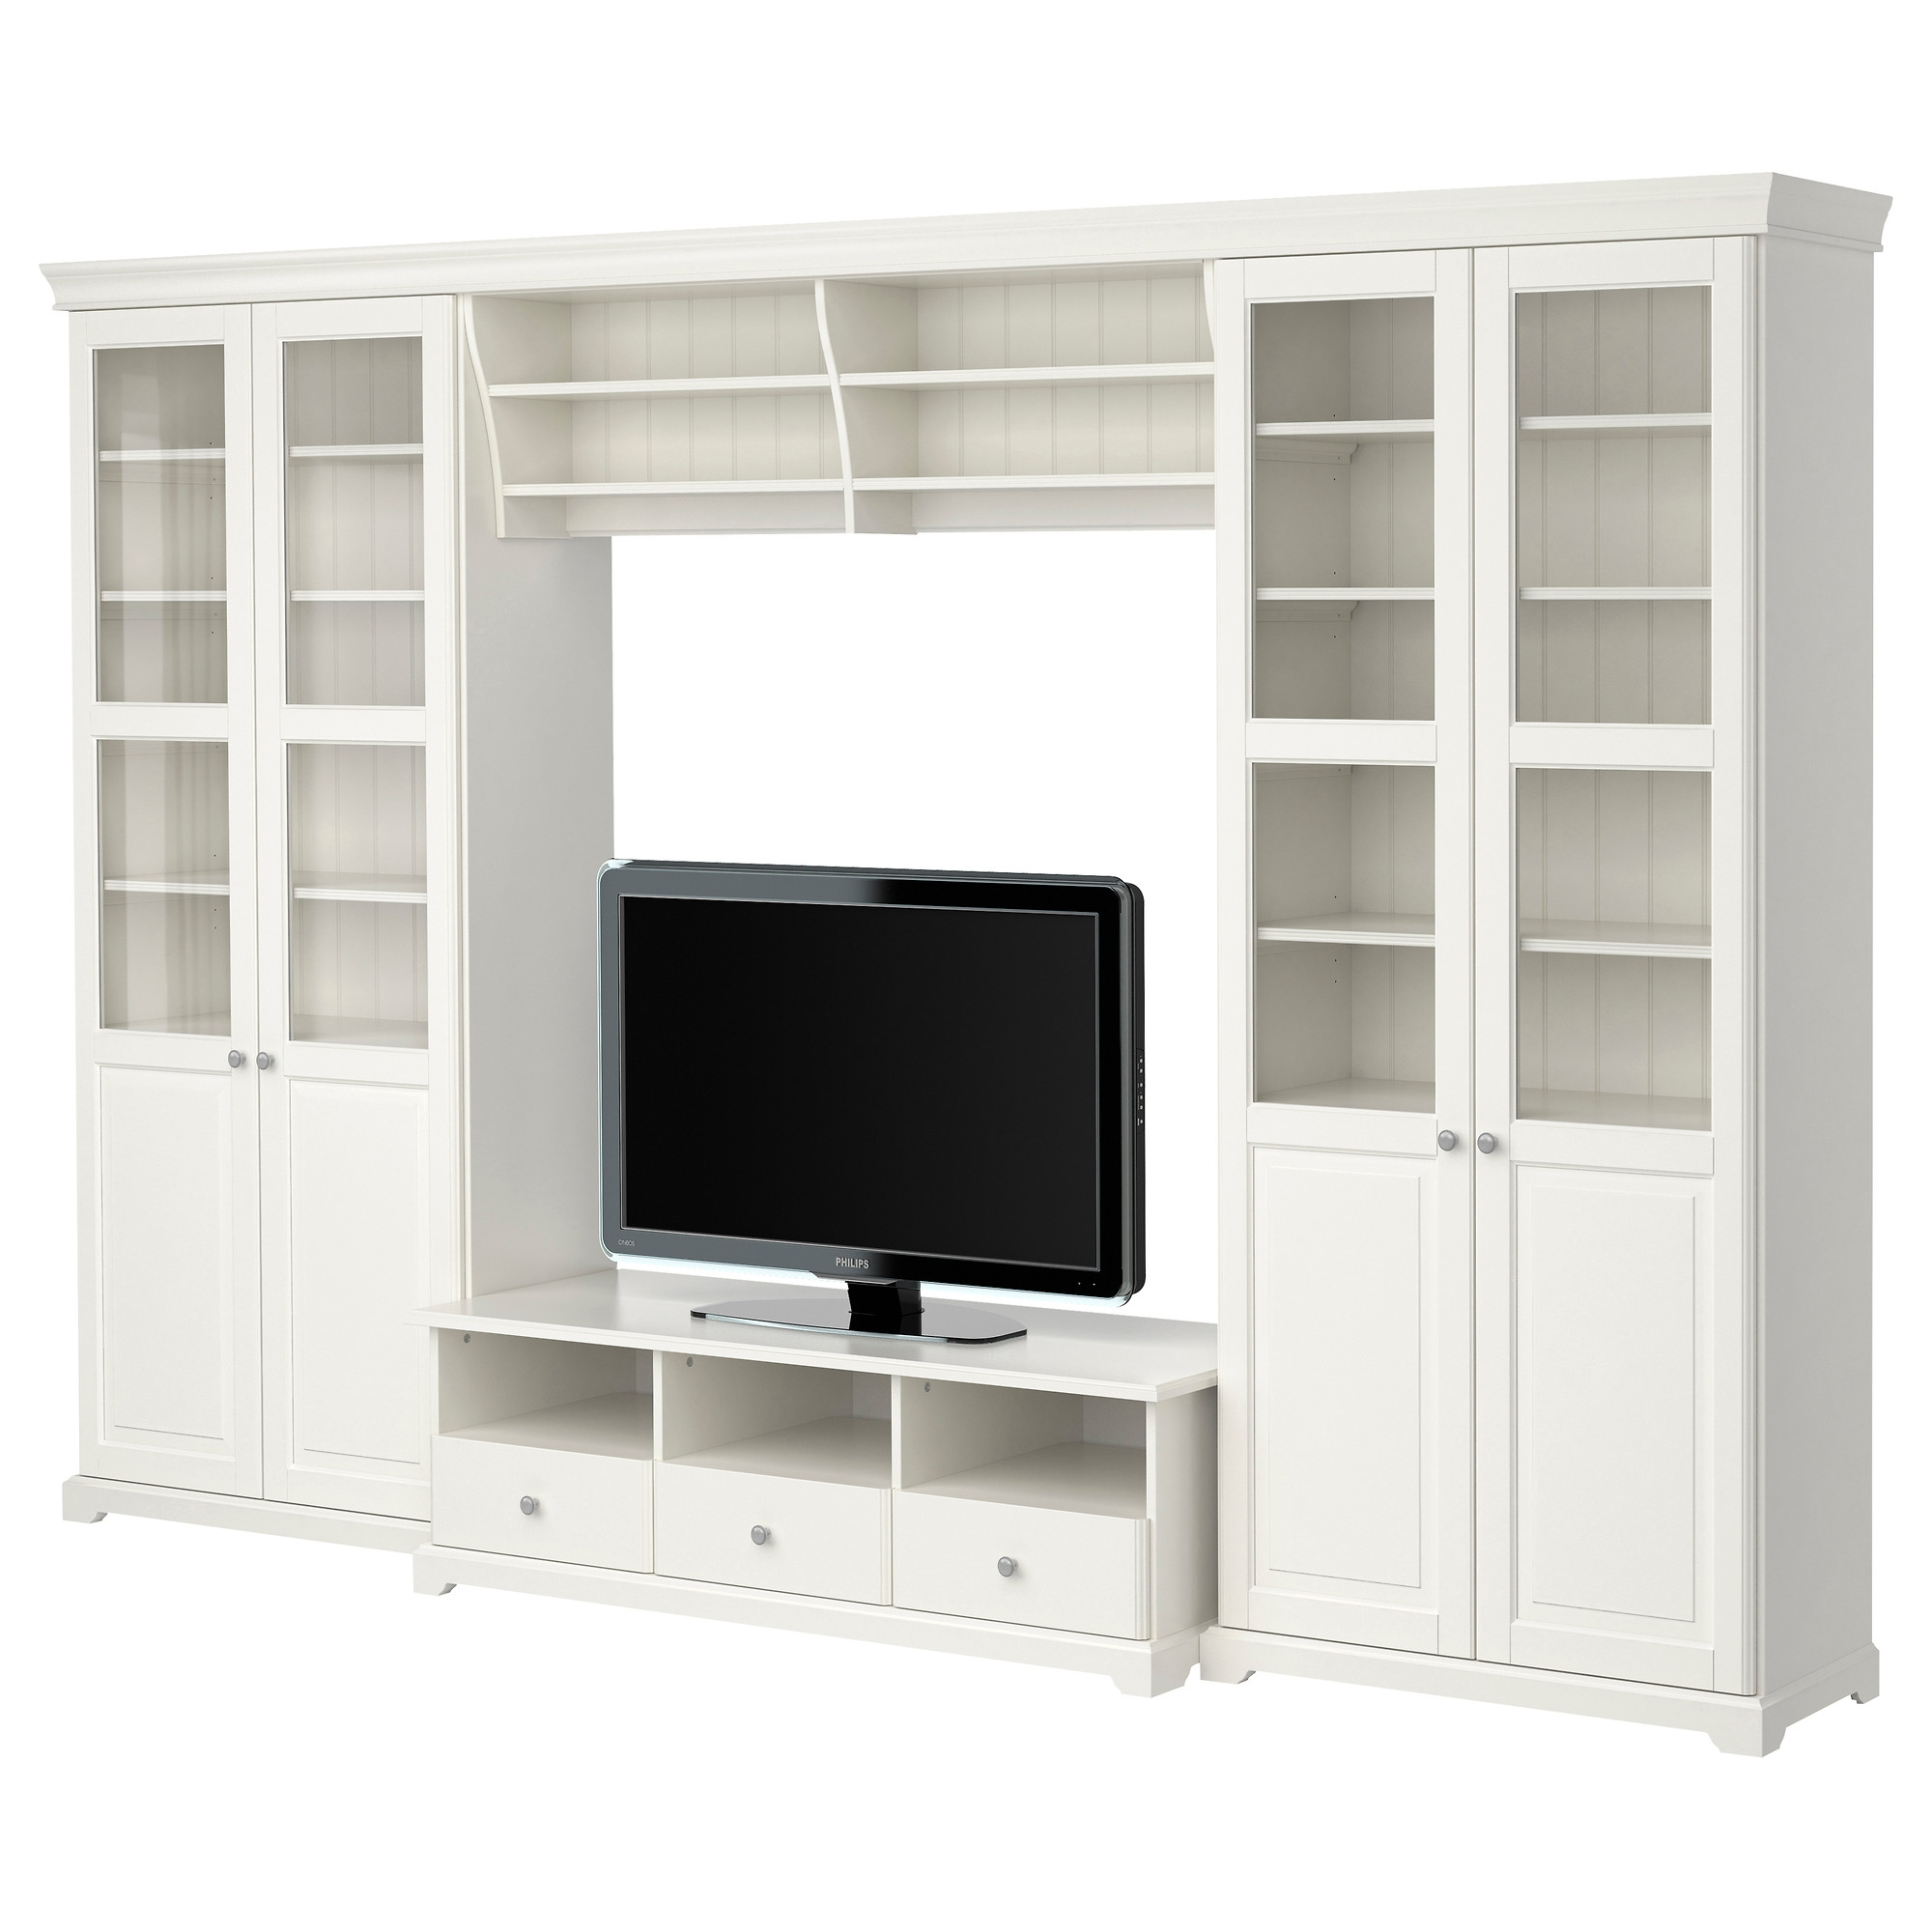 Large Tv Stands Entertainment Centers Ikea In Large Cupboard With Shelves (Image 16 of 25)